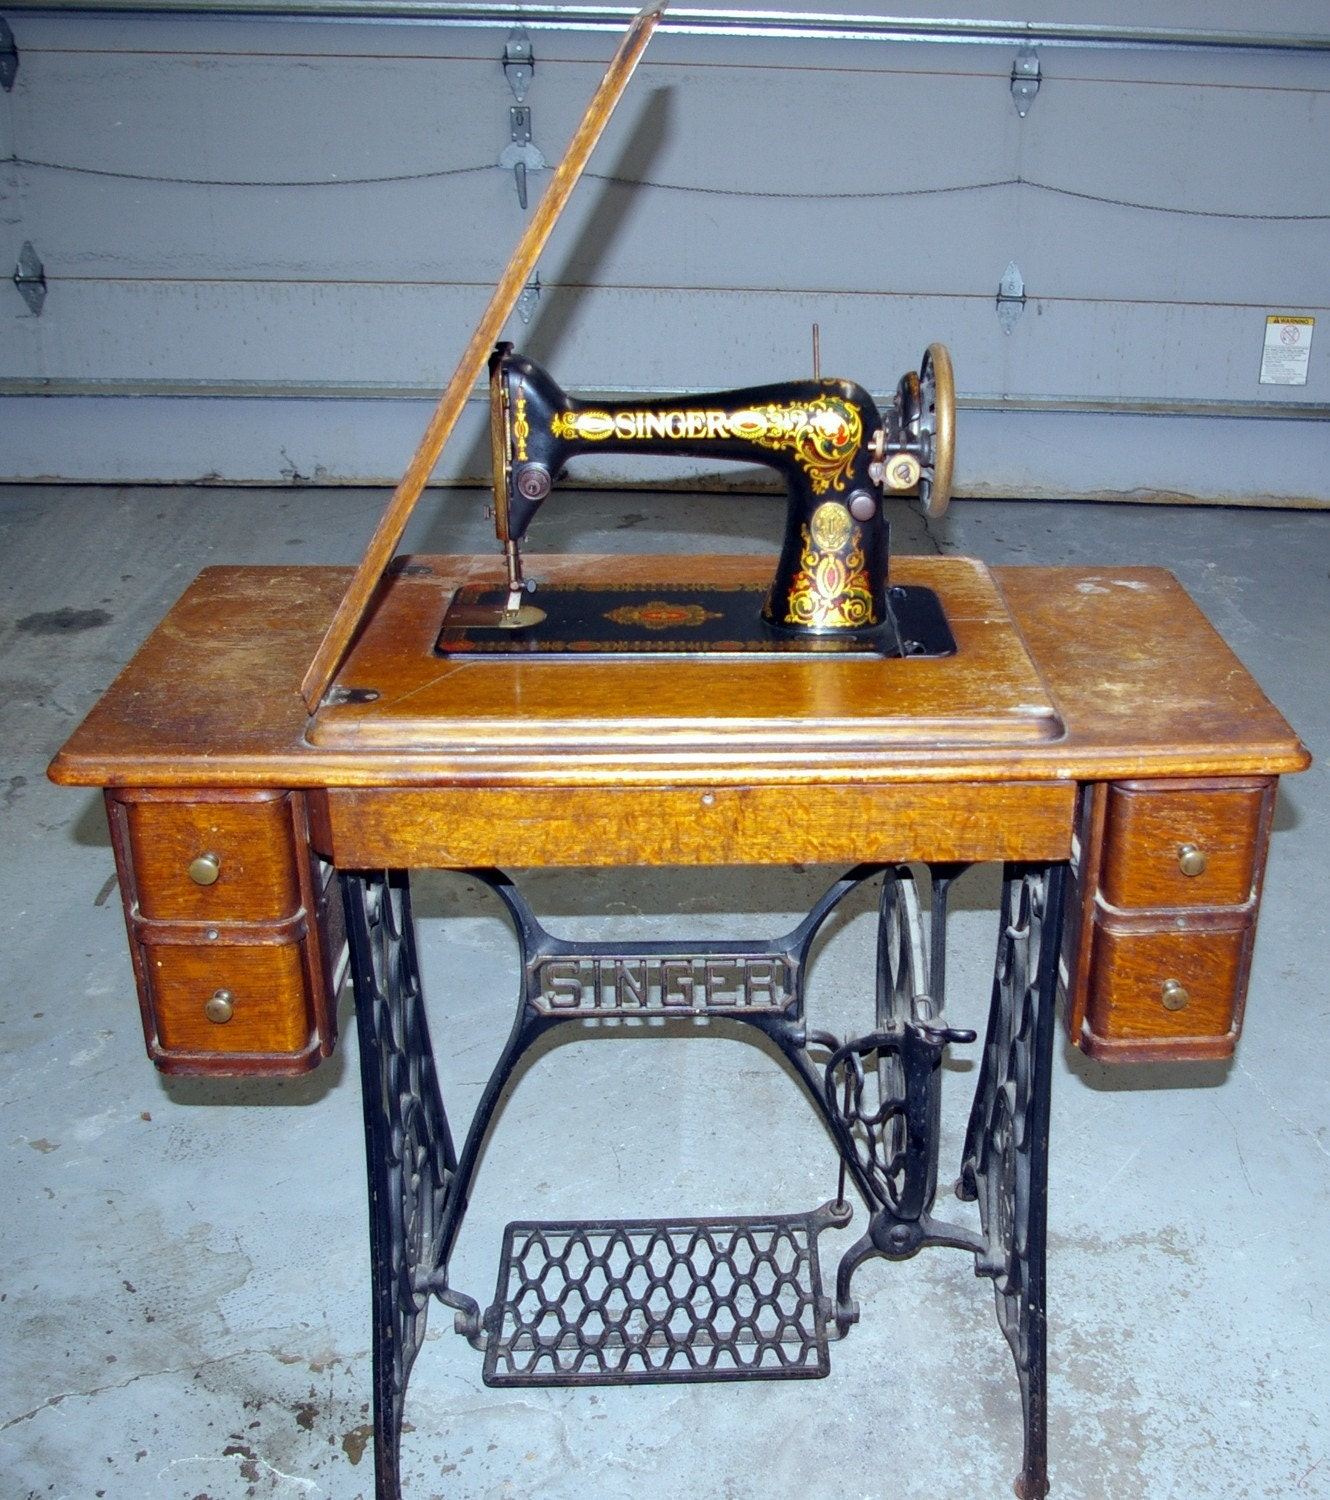 1913 singer sewing machine value